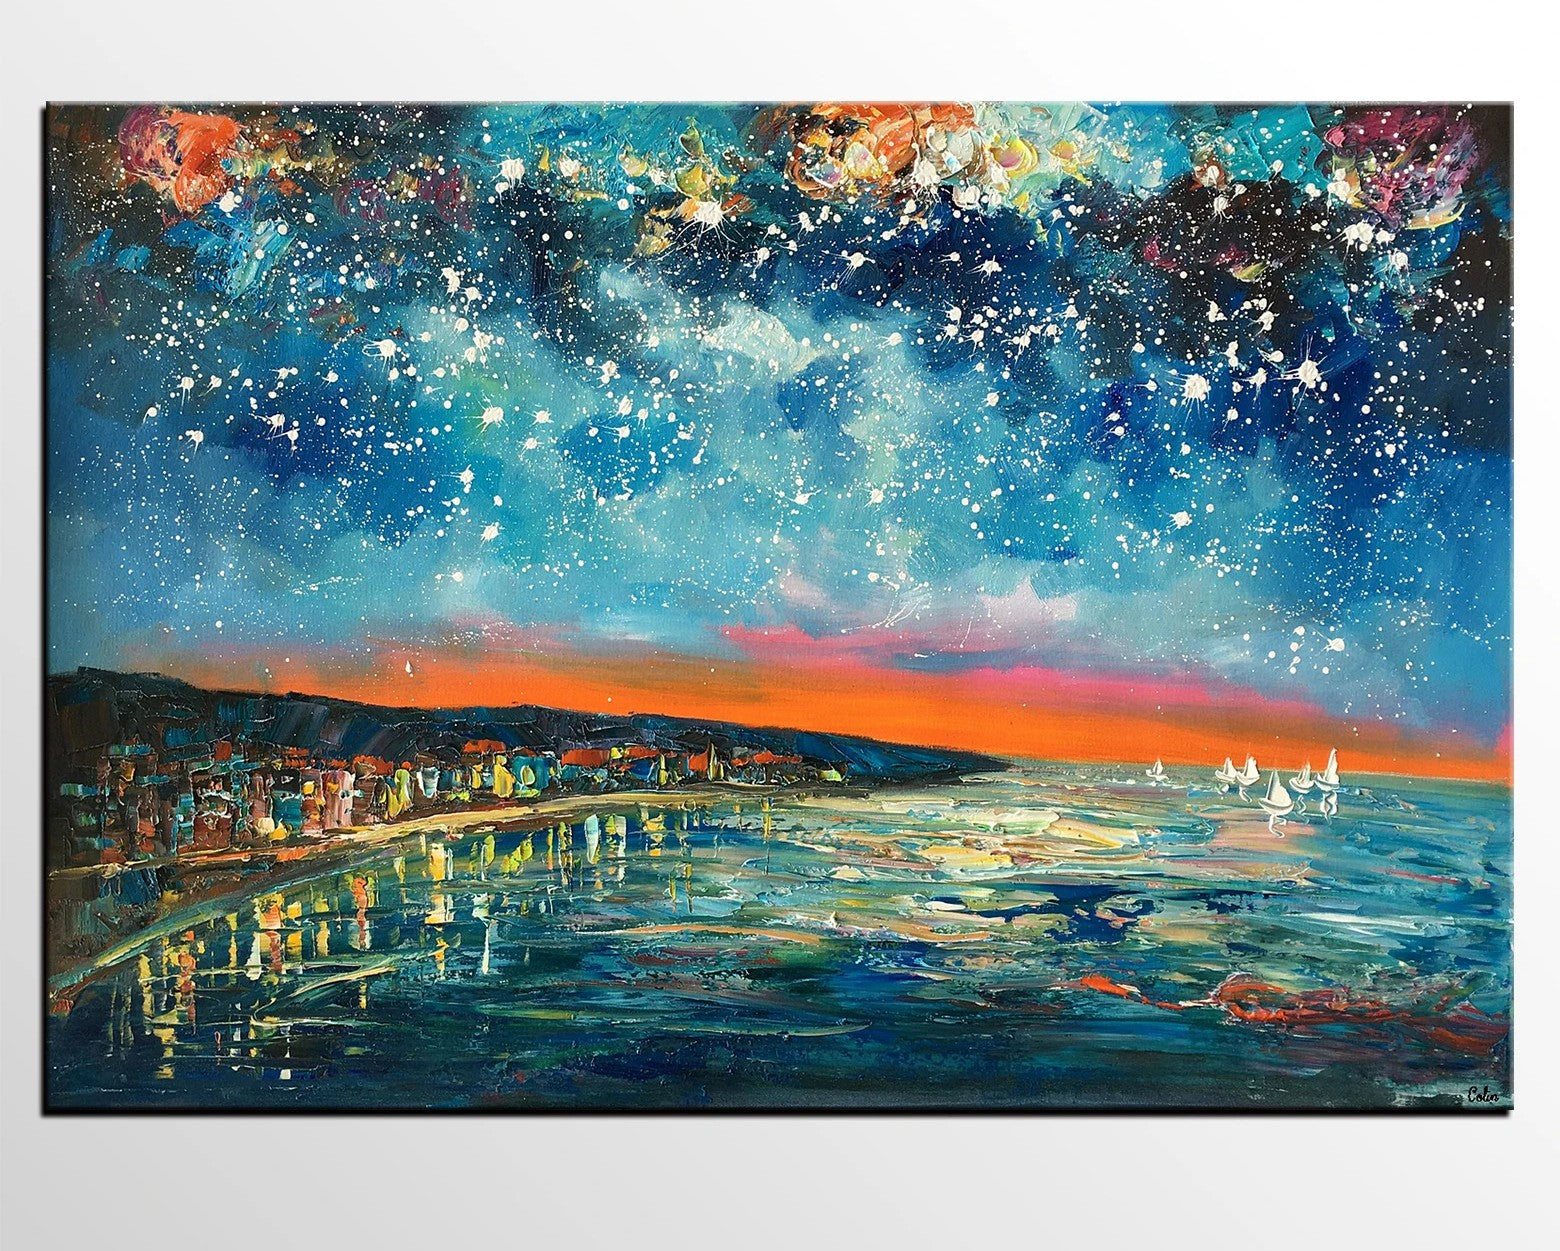 Landscape Canvas Paintings, Starry Night Sky Painting, Landscape Painting for Sale, Custom Original Painting on Canvas